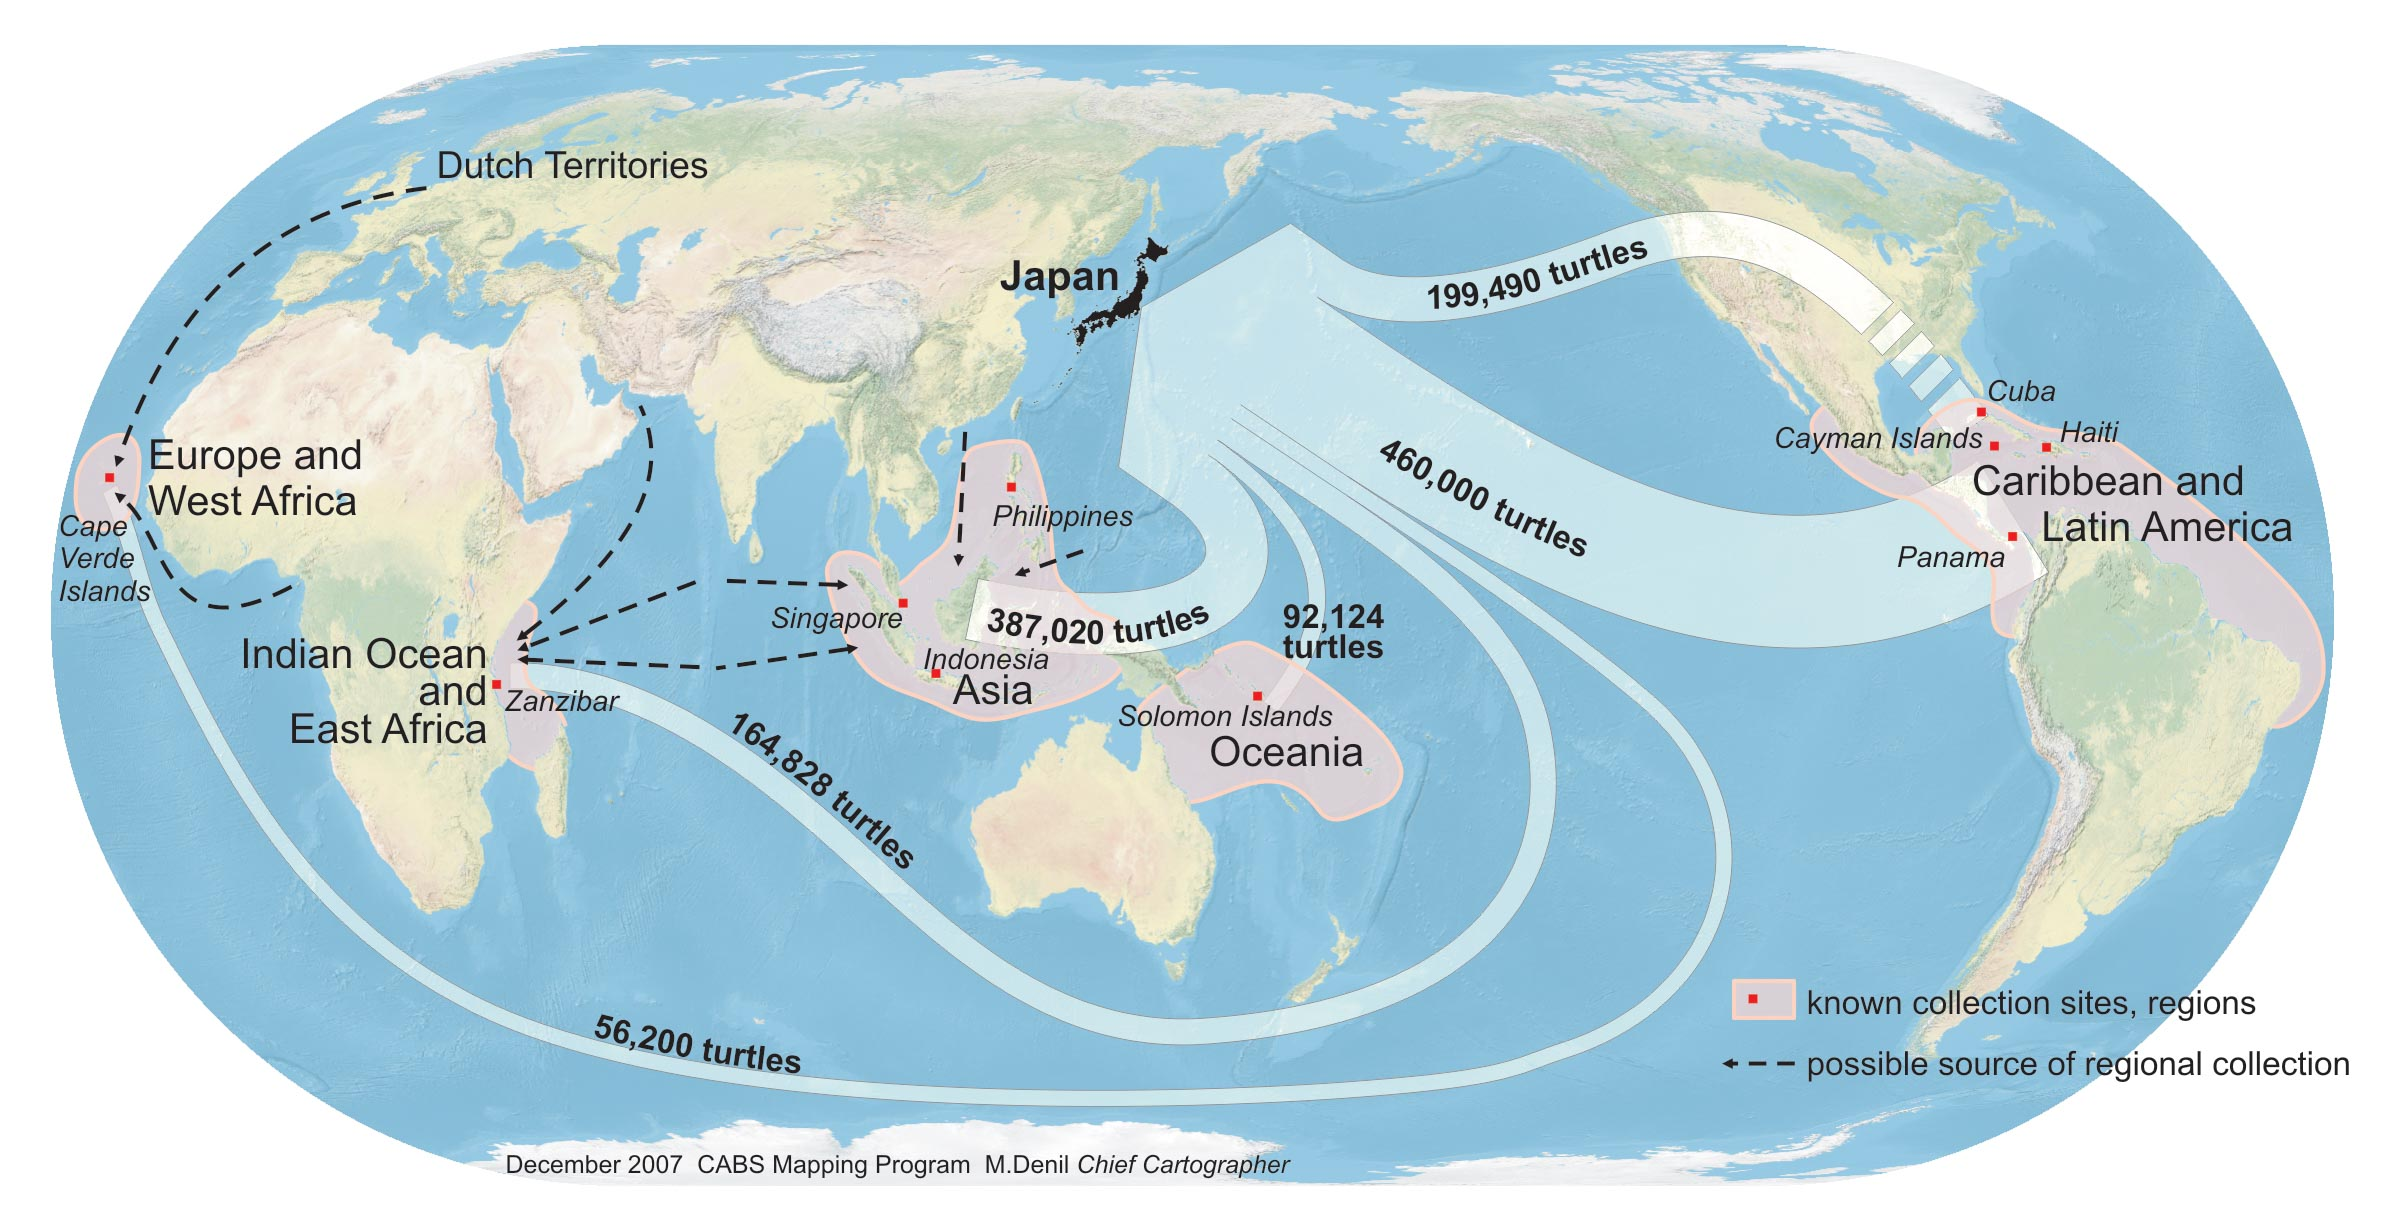 """Hawksbill shell has been traded throughout the world for millennia. The Japanese have figured prominently in the trade of this commodity, which they call """"bekko."""" The figure above depicts Japanese bekko imports from 1950 to 1992, using Japanese customs statistics. Japan was the world's major importer of hawksbill shell during the 20th century; its imports did not cease until the end of 1992. Major locations of export in each region are marked with red dots. Data on bekko volume were compiled and converted to approximate numbers of turtles from Japanese government trade statistics (from Mortimer and Donnelly's forthcoming IUCN Hawksbill Red List Assessment)."""